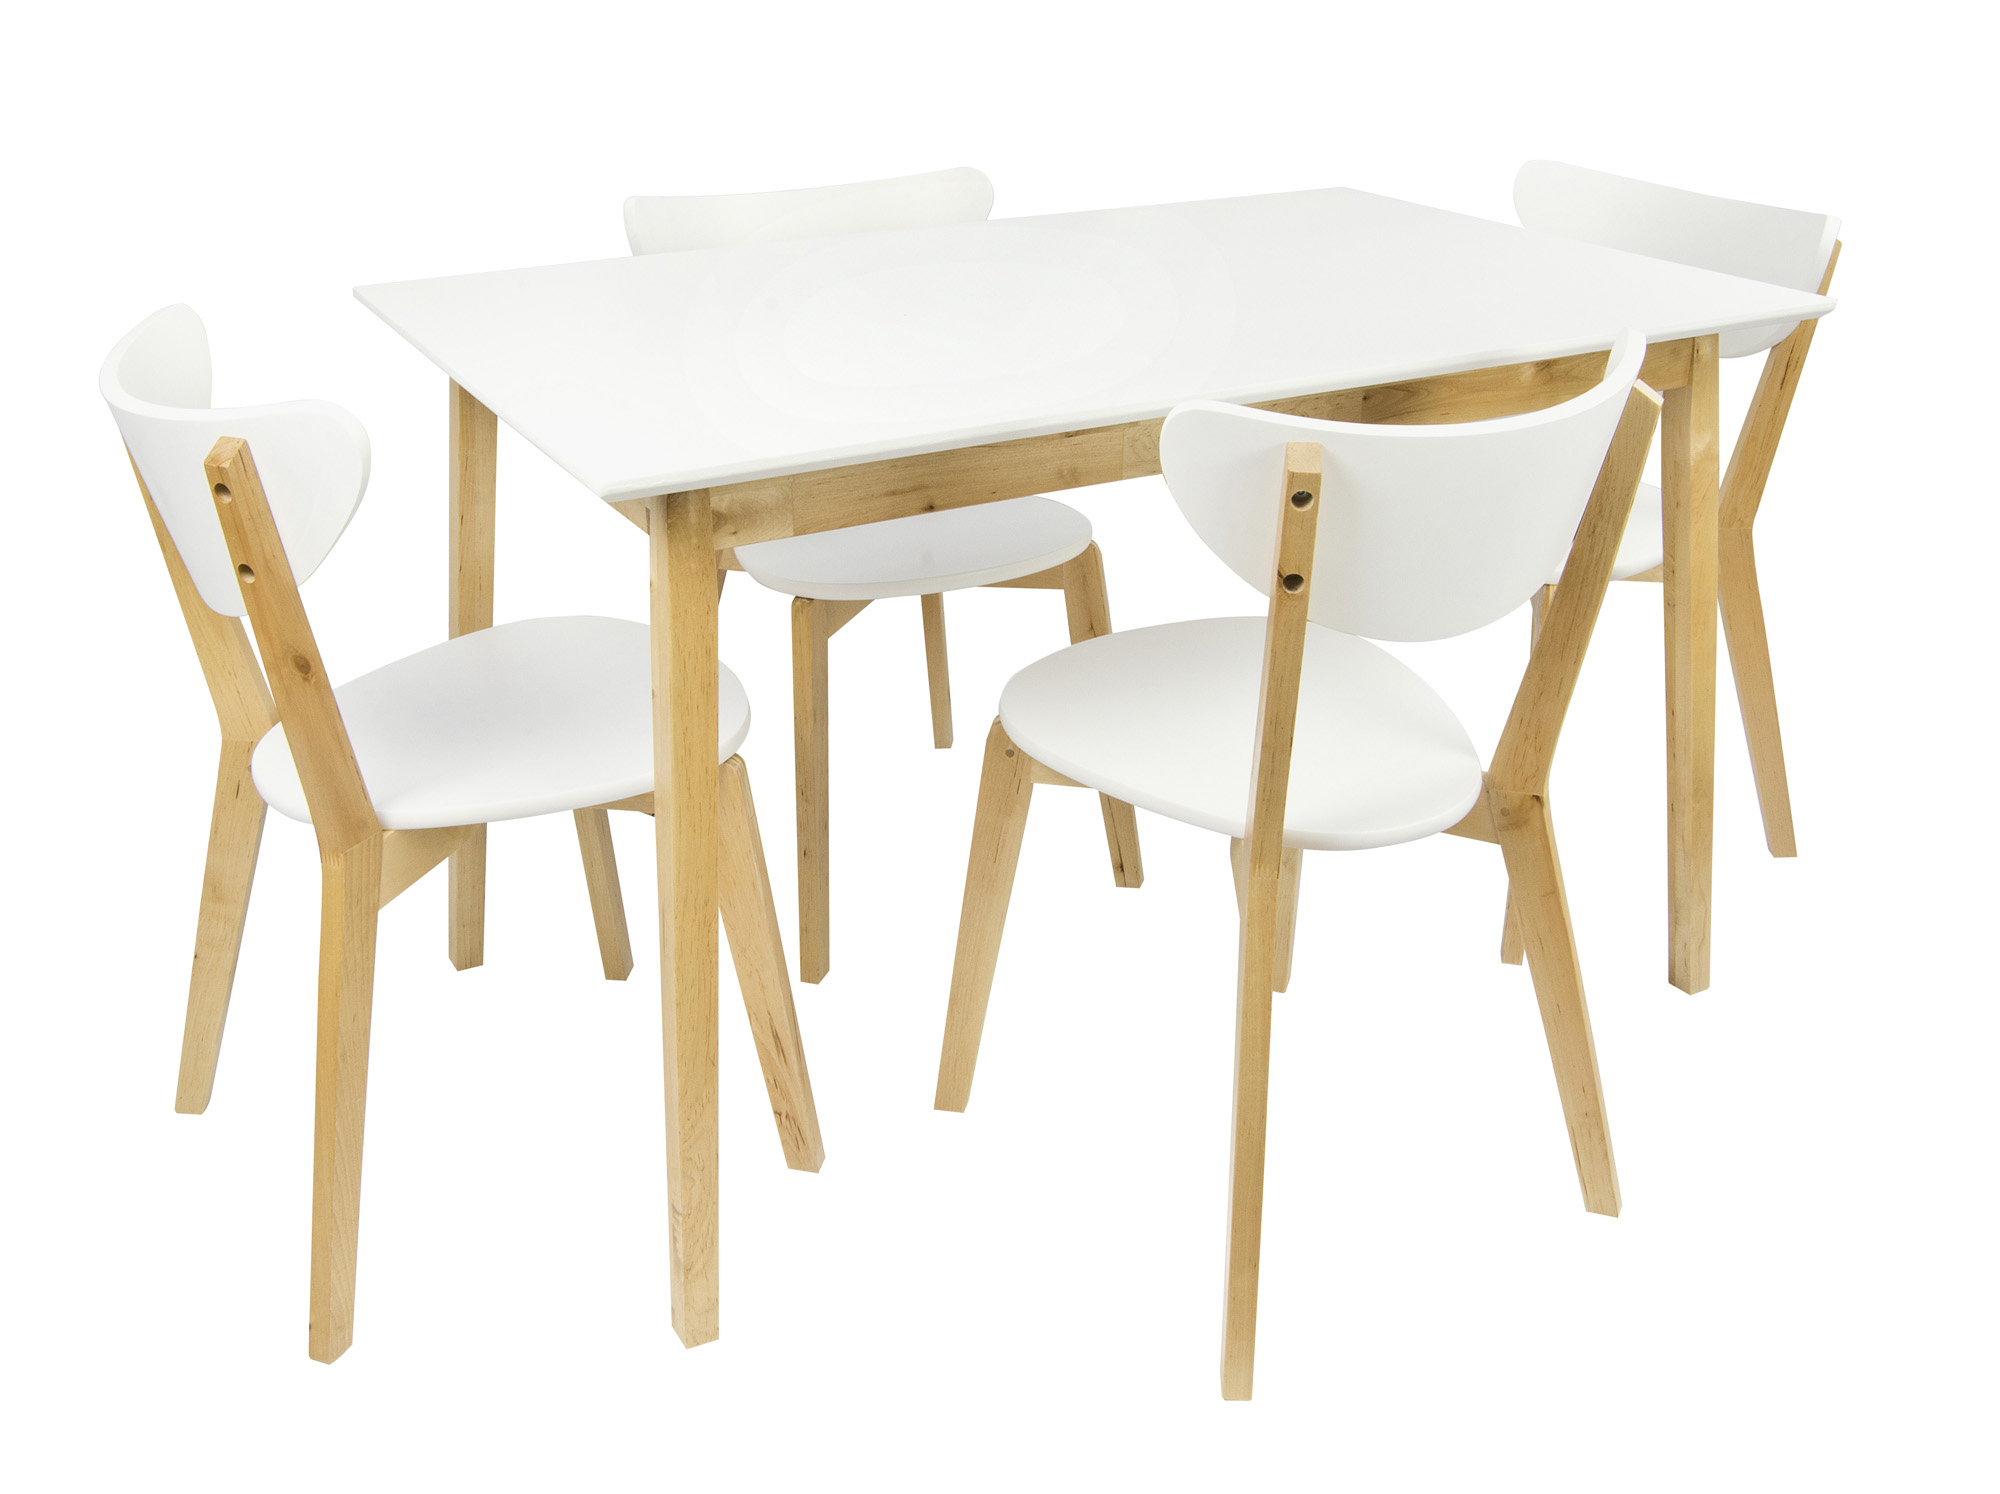 Table en bois avec 4 chaises Naturel table a manger Leomark FR # Table En Bois Naturel